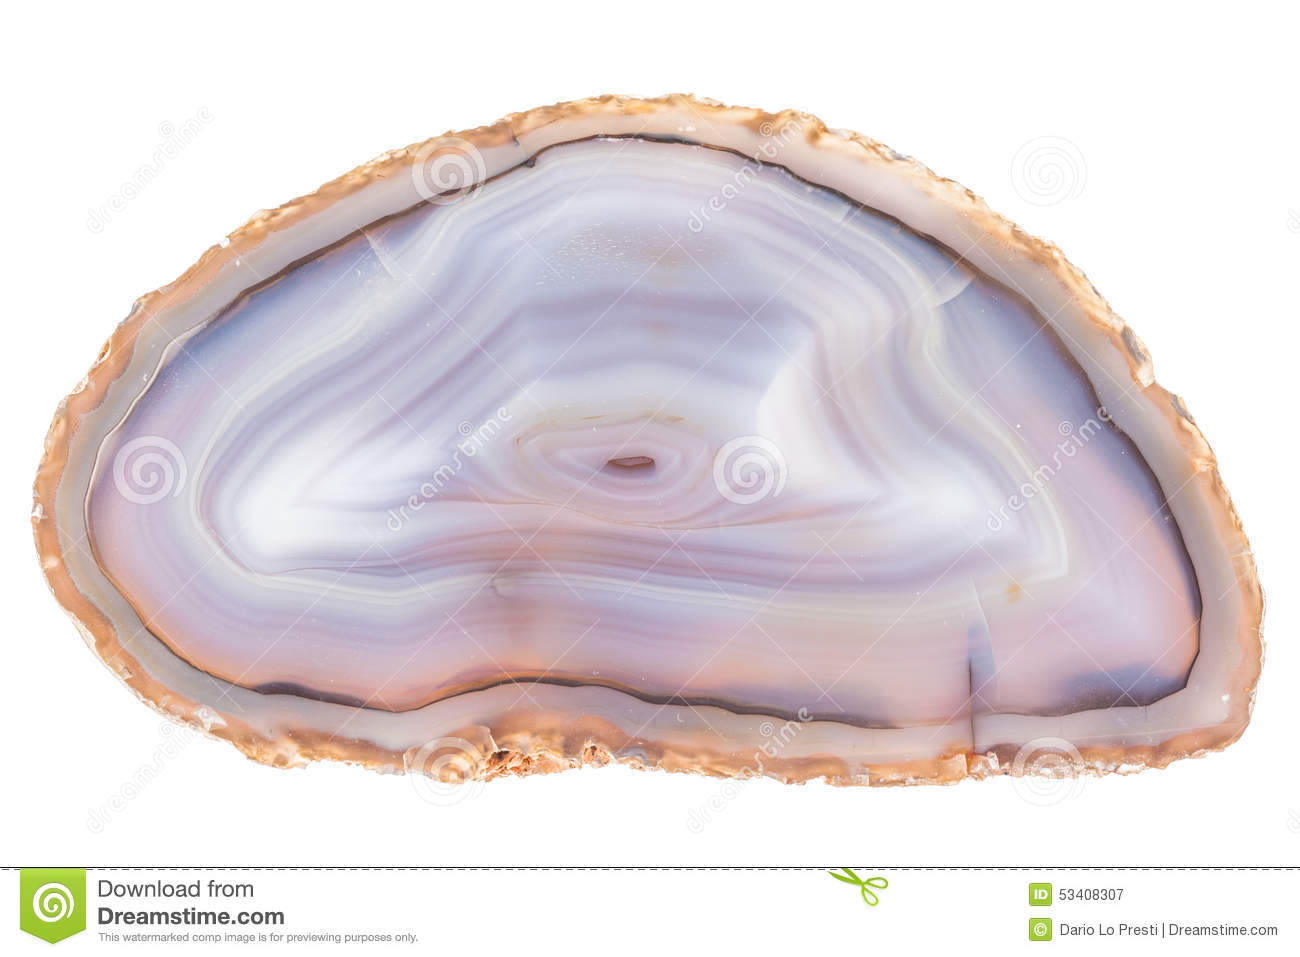 geode-slice-thin-agate-geodes-concentric-layers-isolated-over-white-background-53408307.jpg